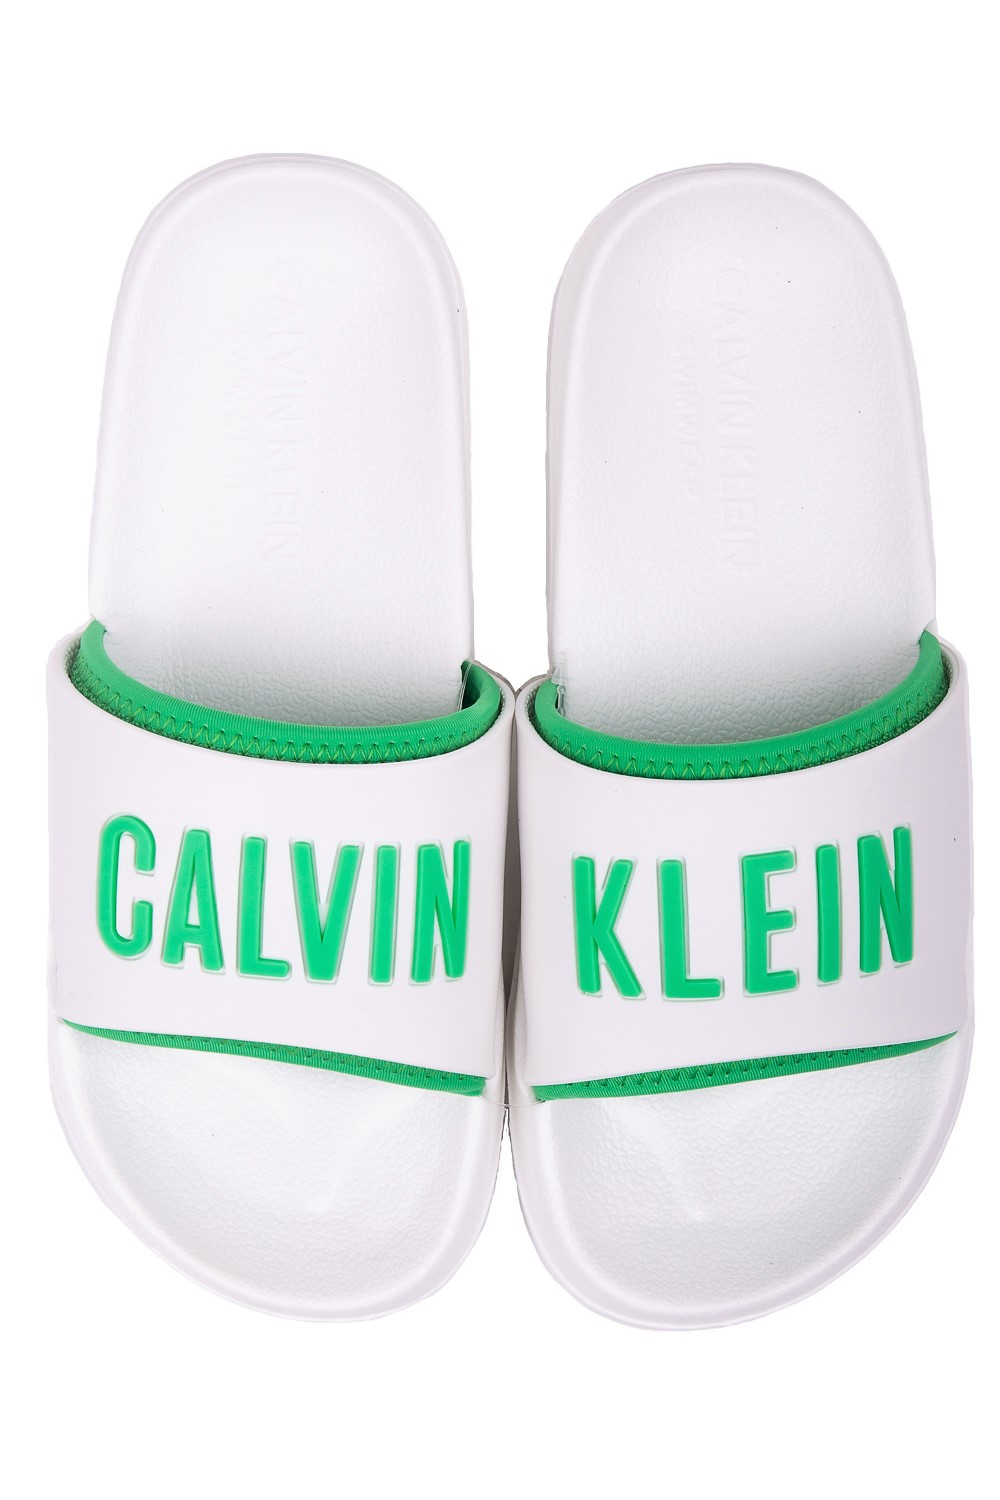 Calvin Klein white unisex slippers Slide White